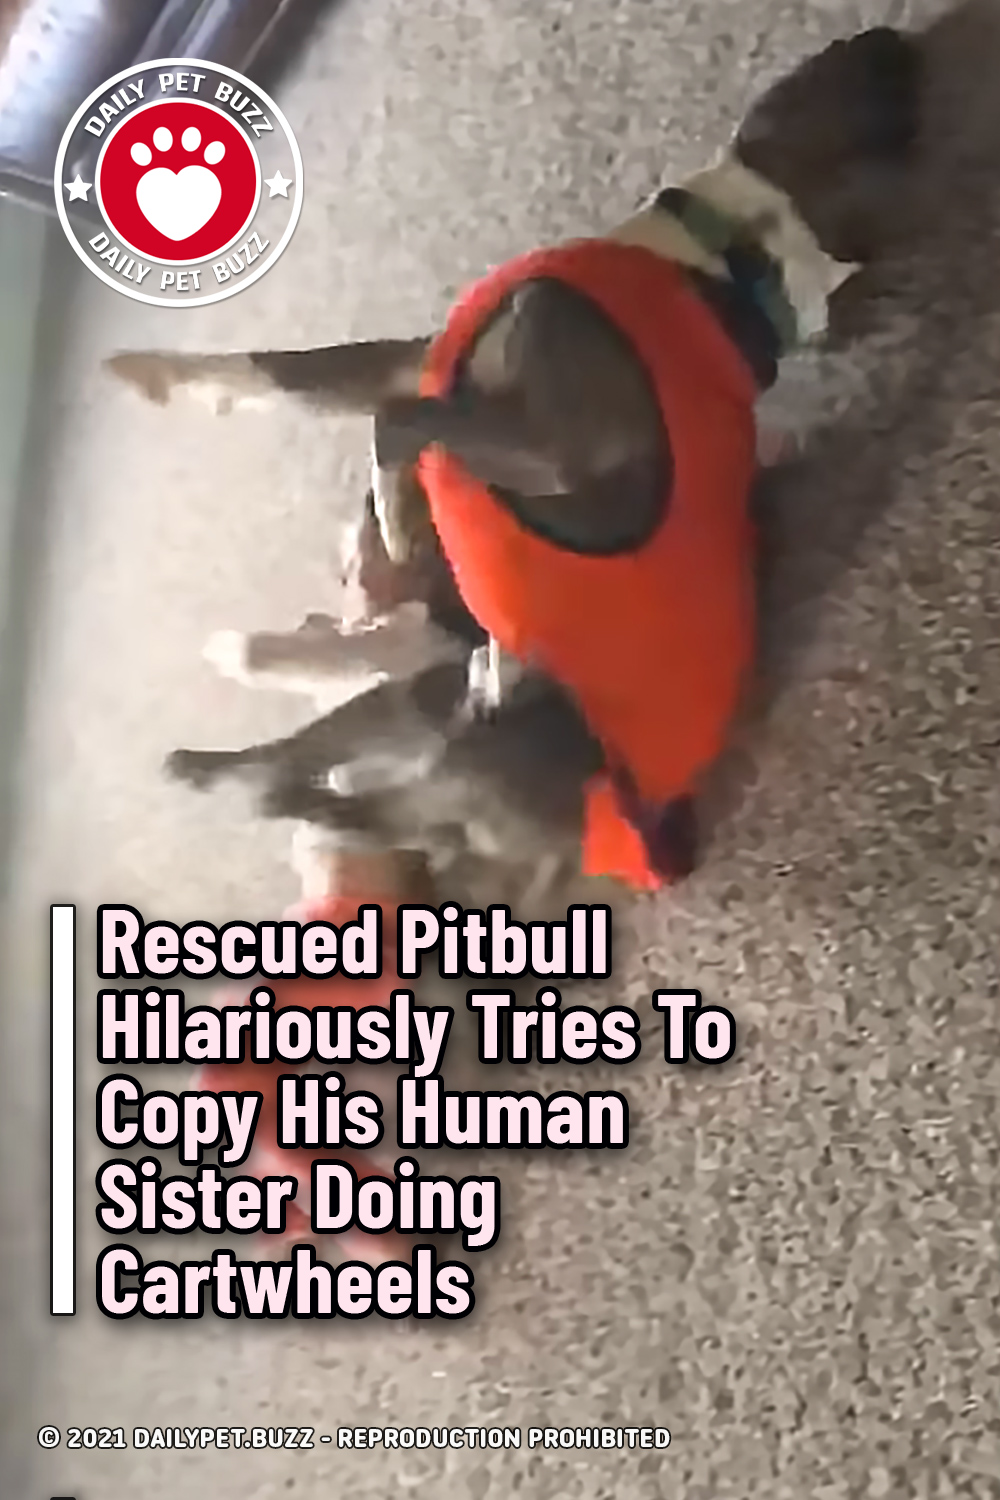 Rescued Pitbull Hilariously Tries To Copy His Human Sister Doing Cartwheels